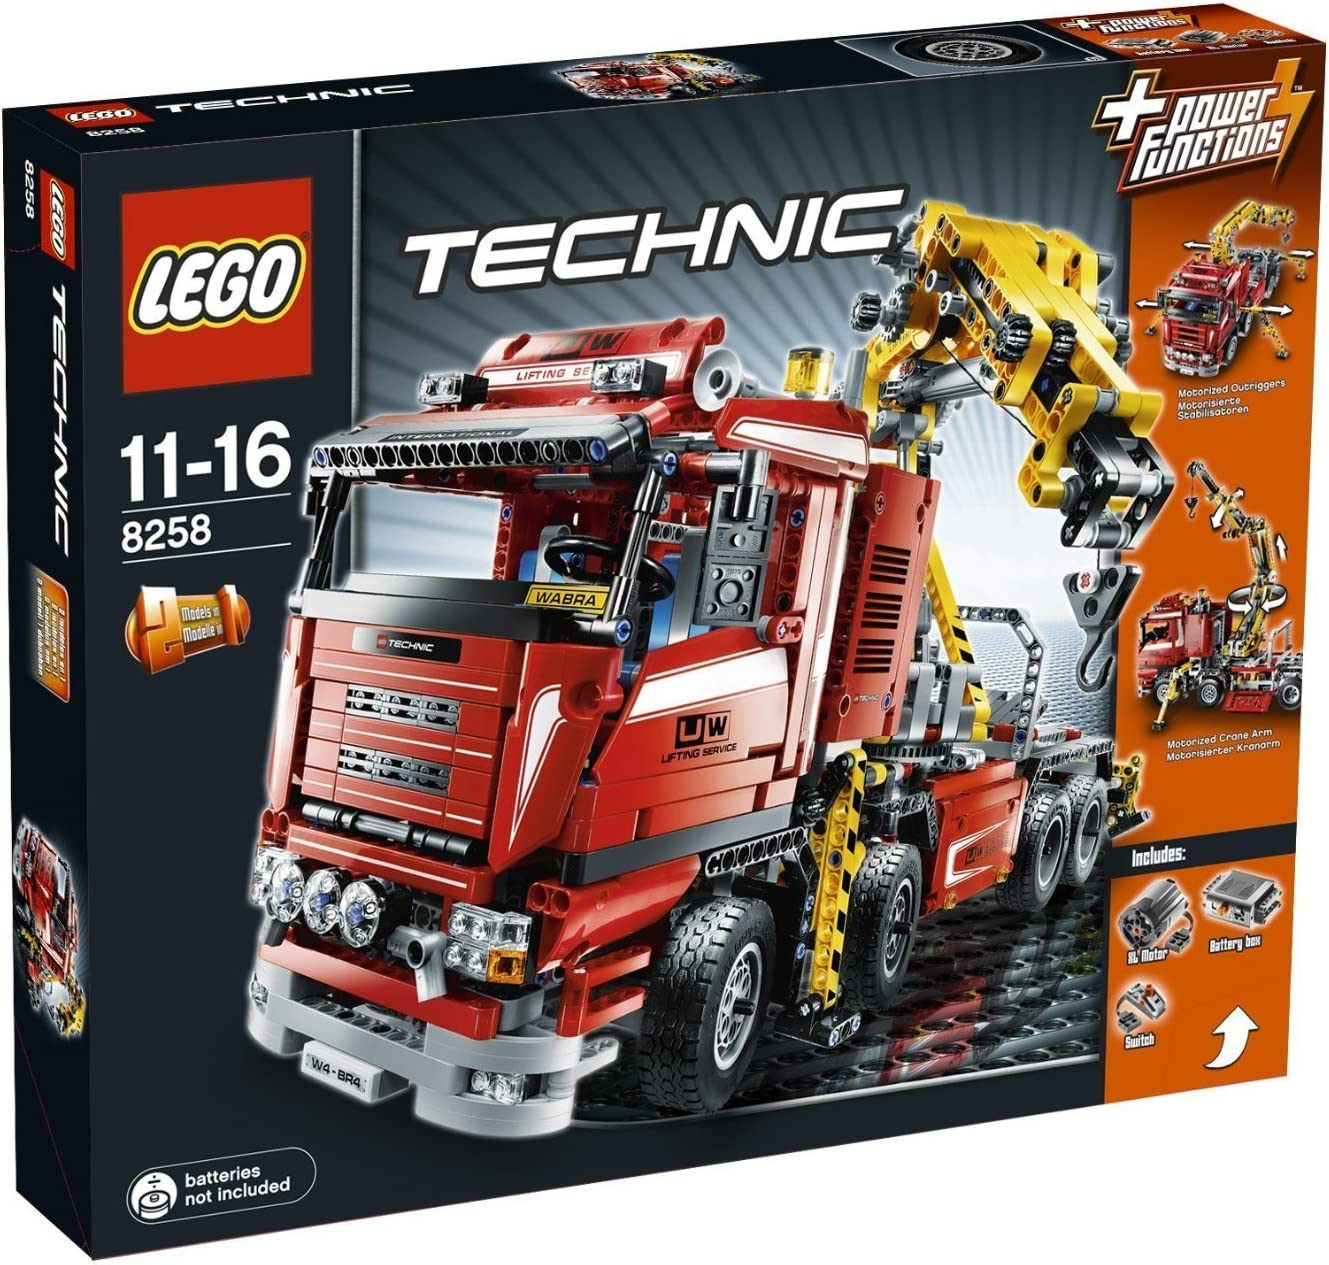 7 Best LEGO Crane Sets Reviews in 2021 Parents Can Buy 13